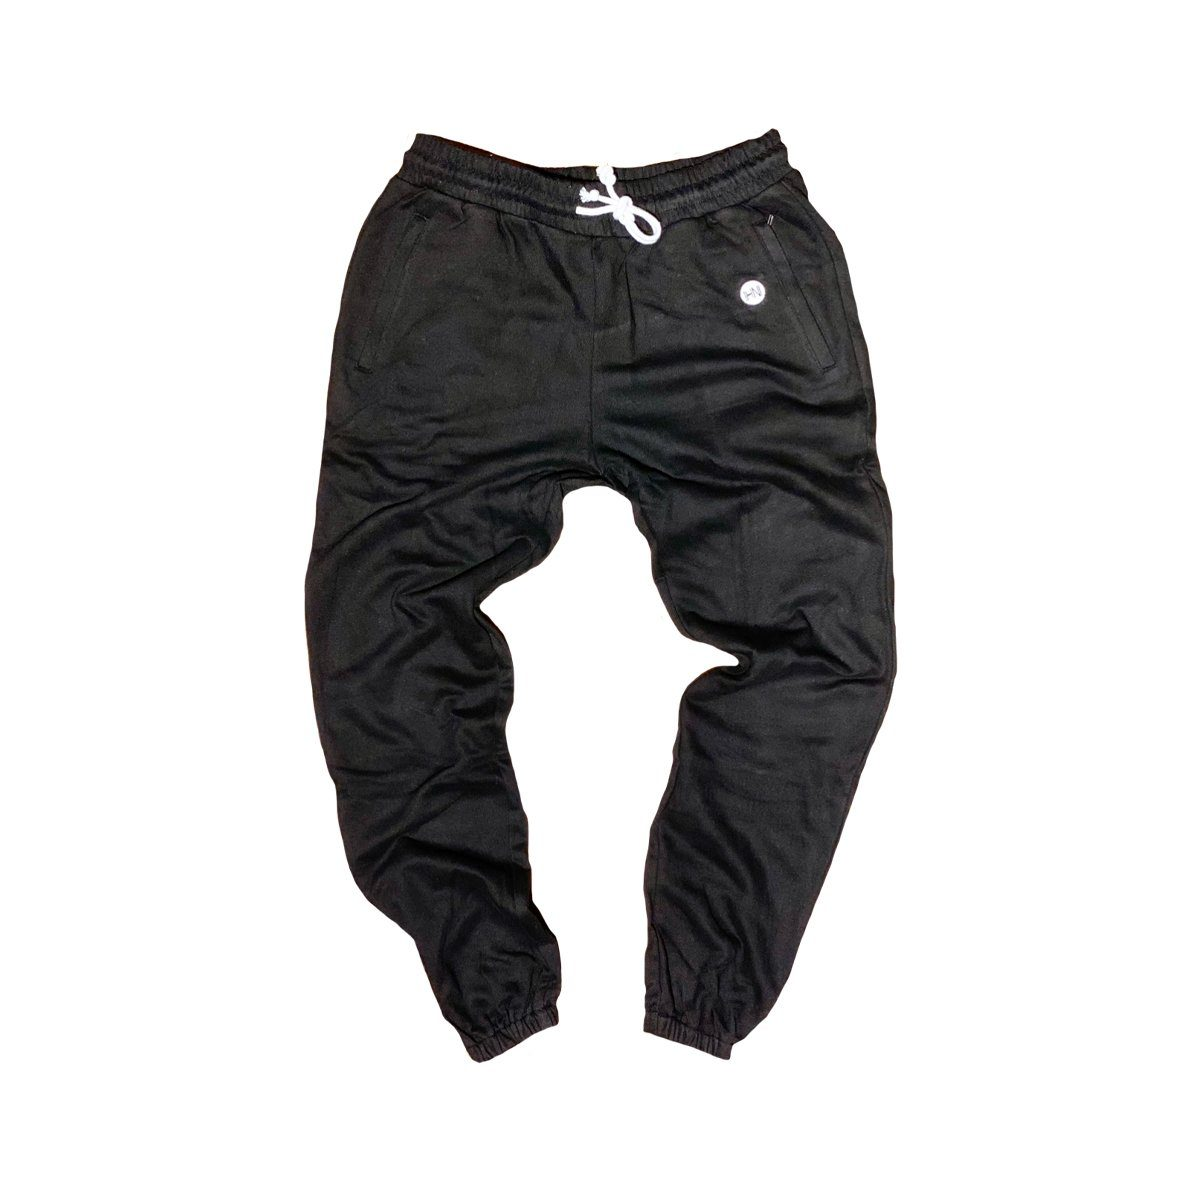 HYBRID NATION BASICS SWEATPANTS (BLACK) Men's Basics Sweatpants Hybrid Nation (China) XS